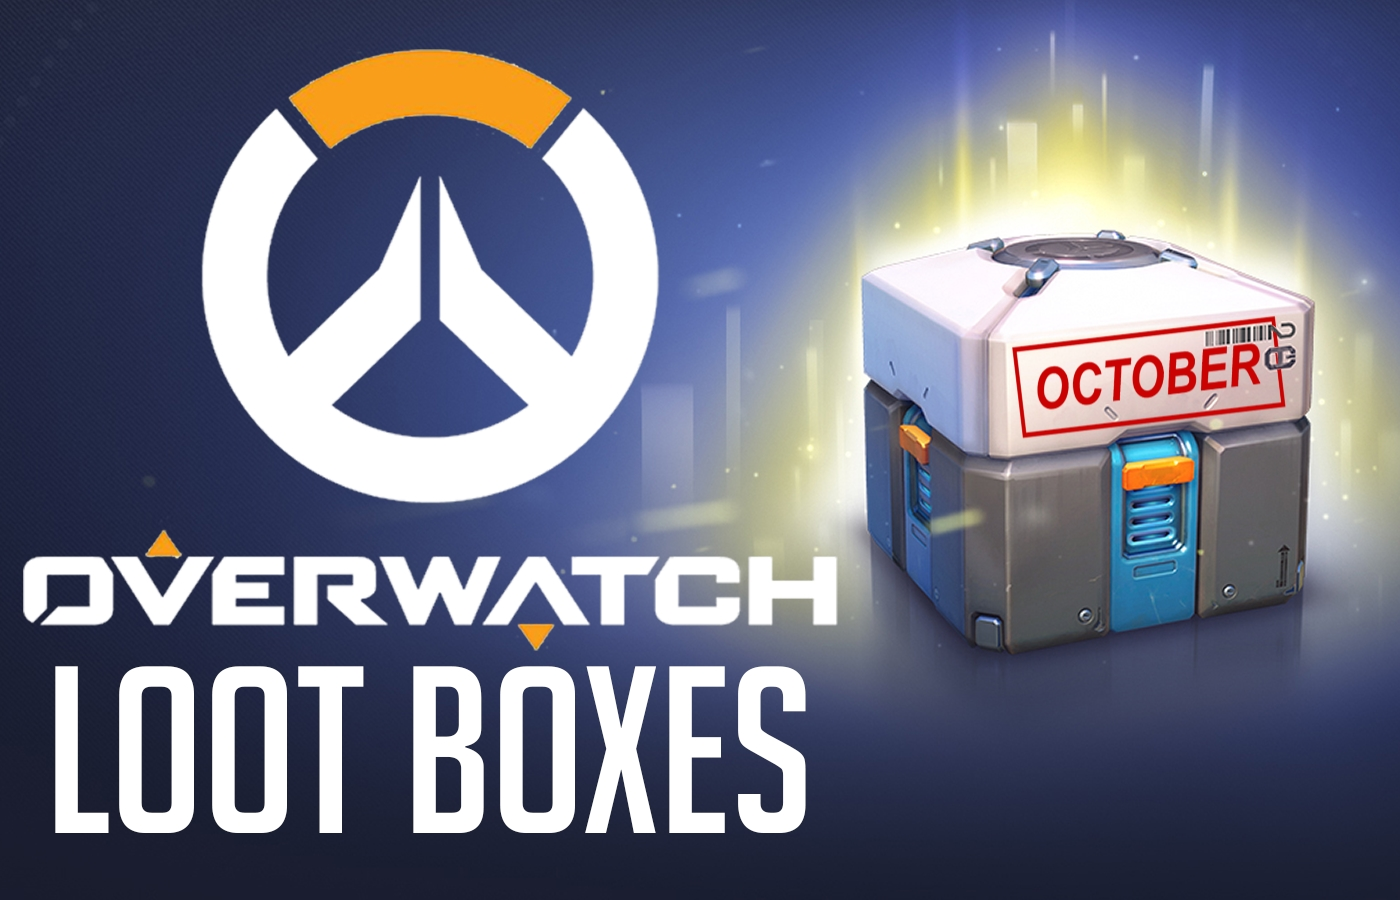 Overwatch Loot Box x5 [Twitch Prime] Key (OCTOBER 10TH)